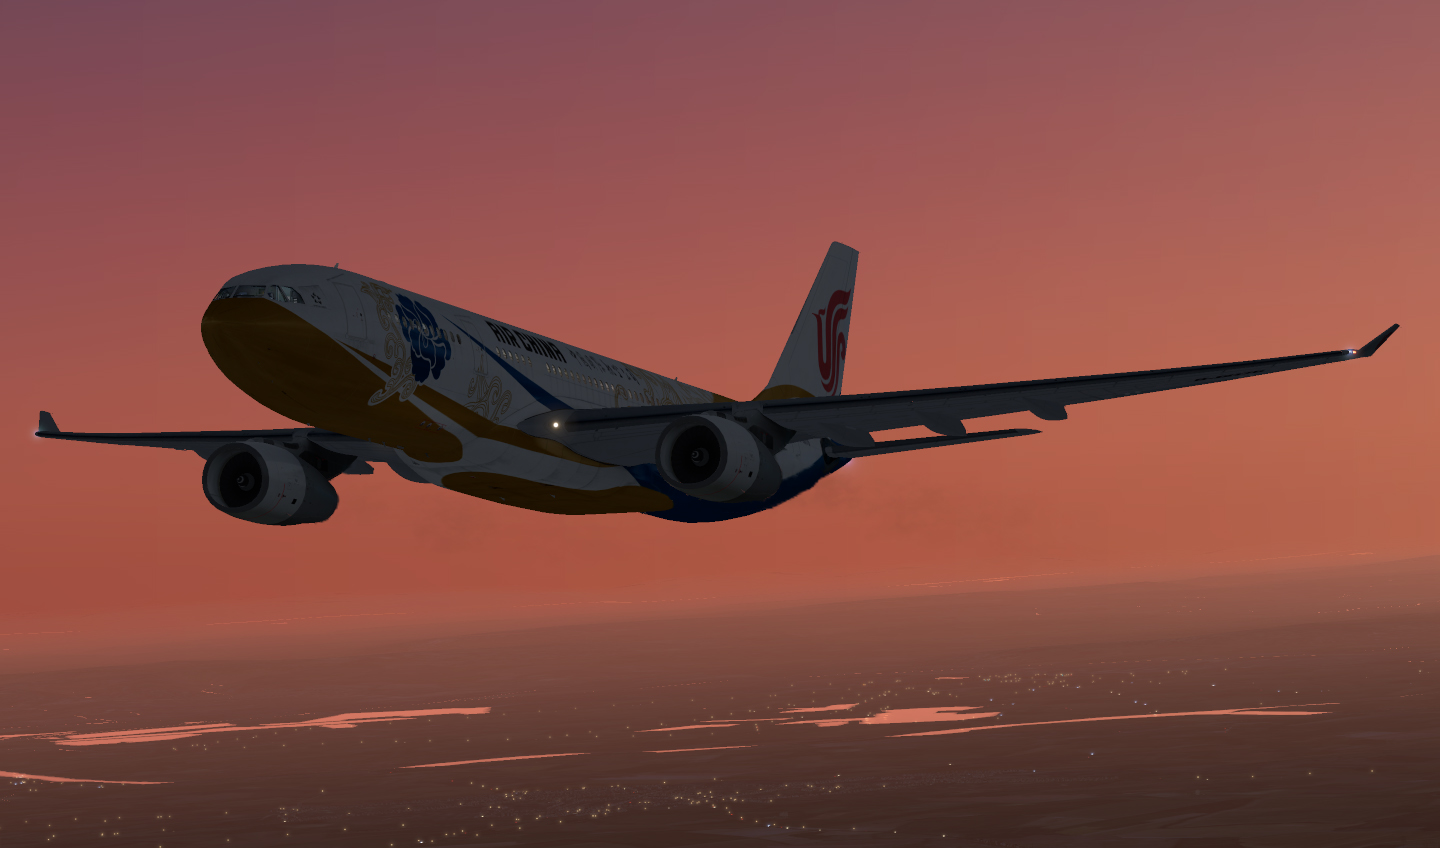 X-Plane 11/10 Downloads - Fly Away Simulation